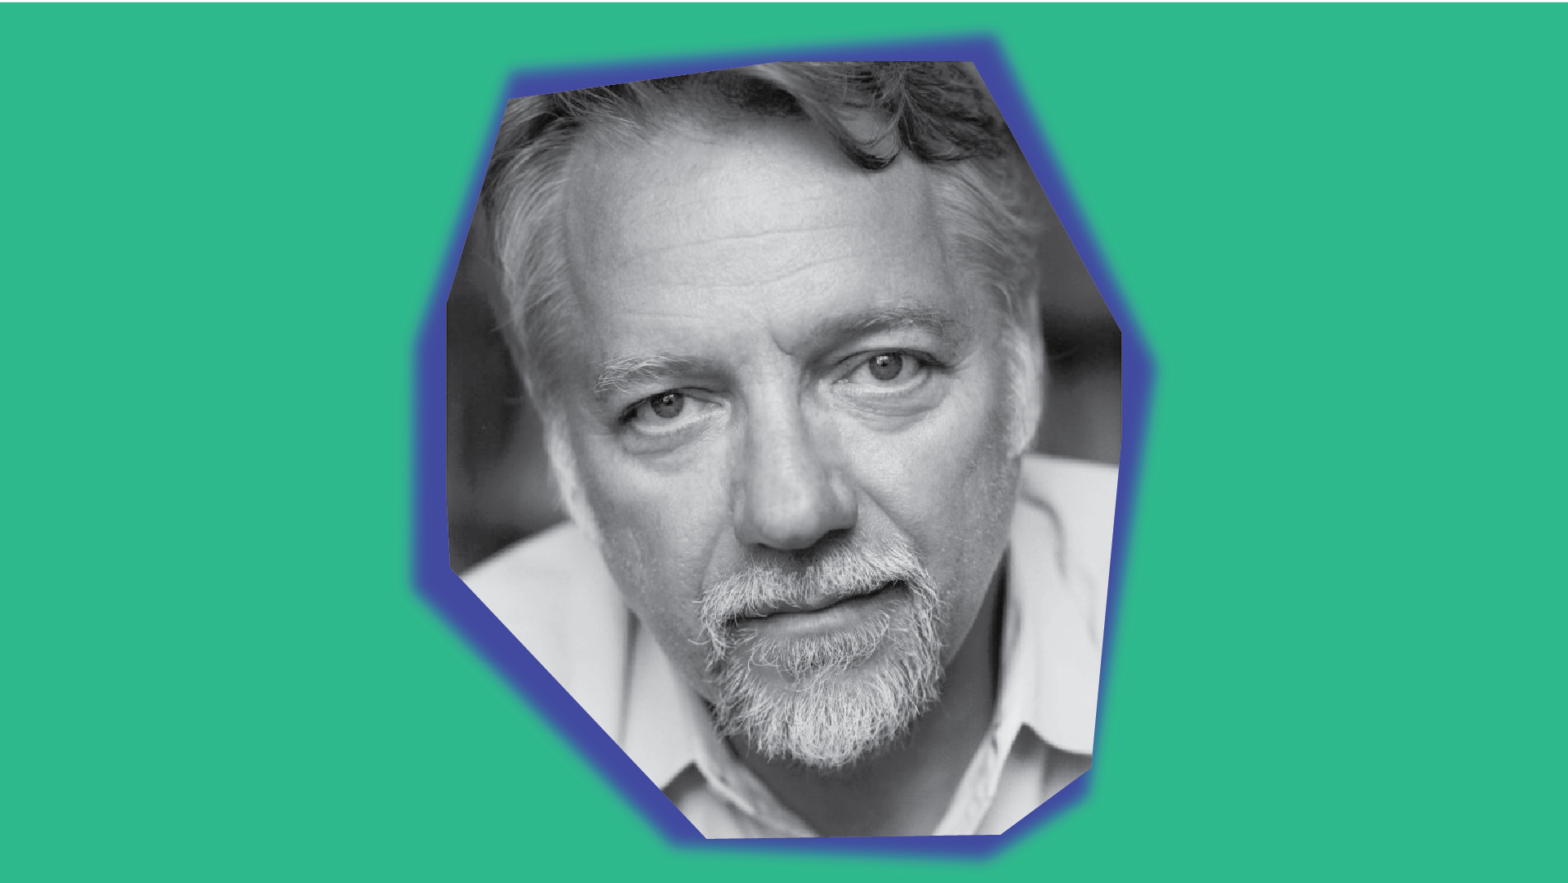 Black and white headshot of Edward Burtynsky embedded within a rhombus asymmetrical glowing shape on top of a green background